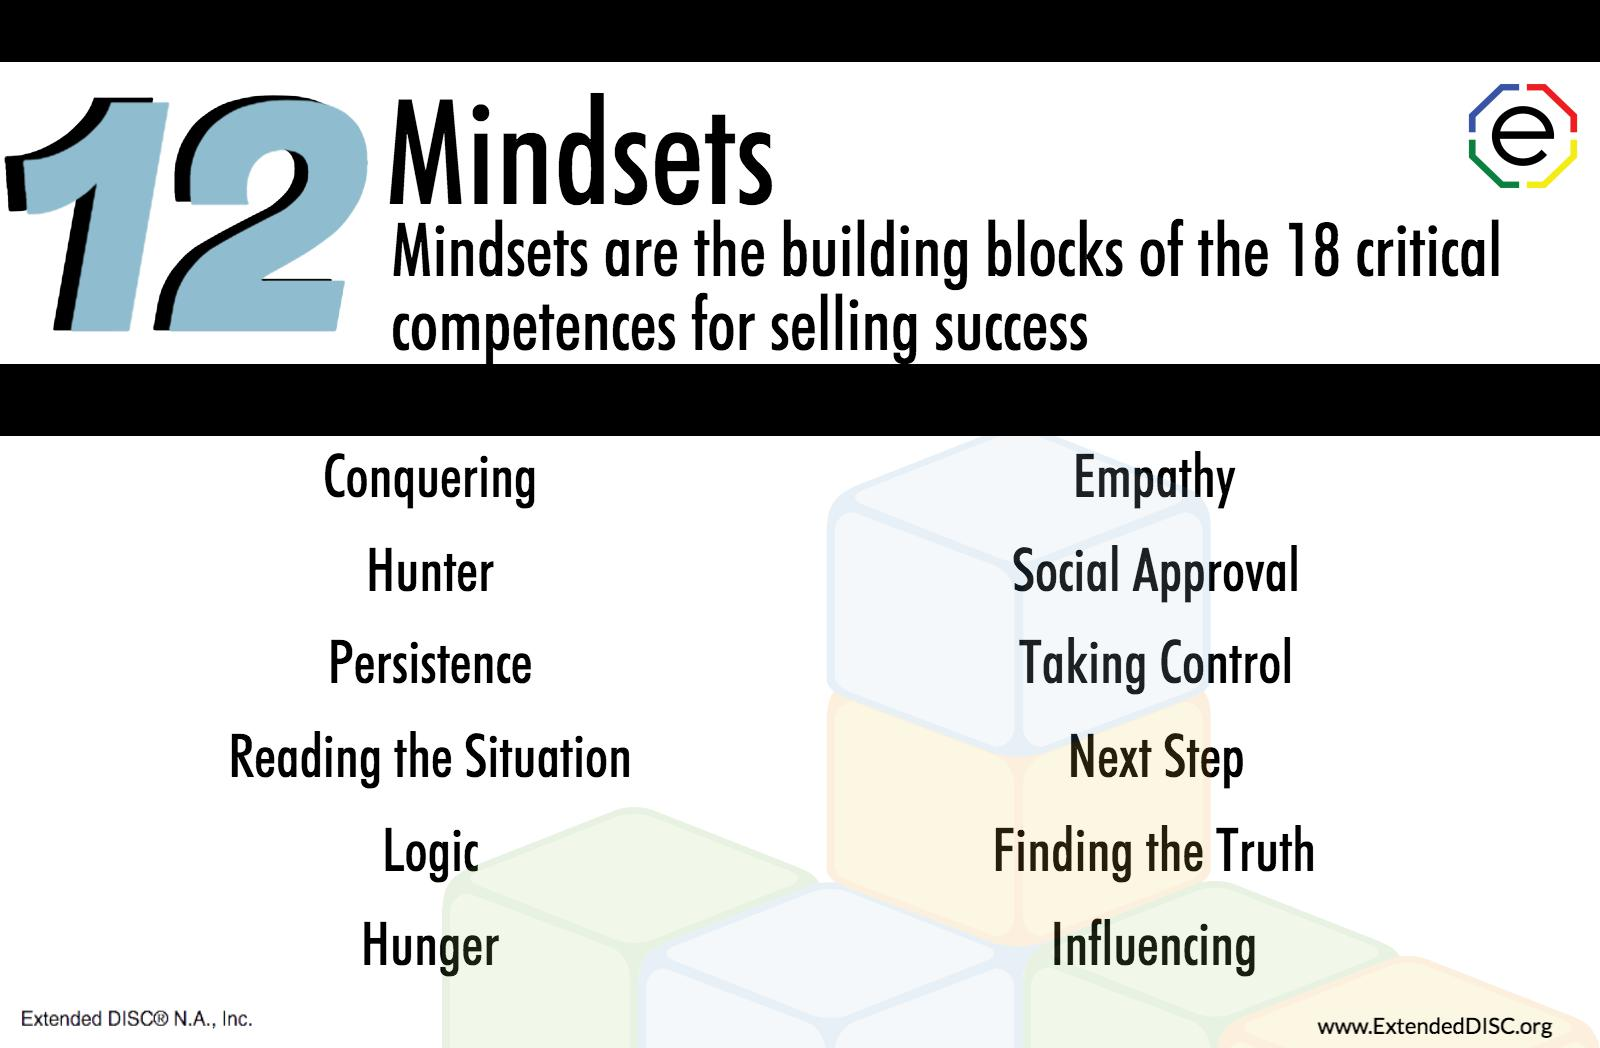 Sales Assessments 12 Mindsets